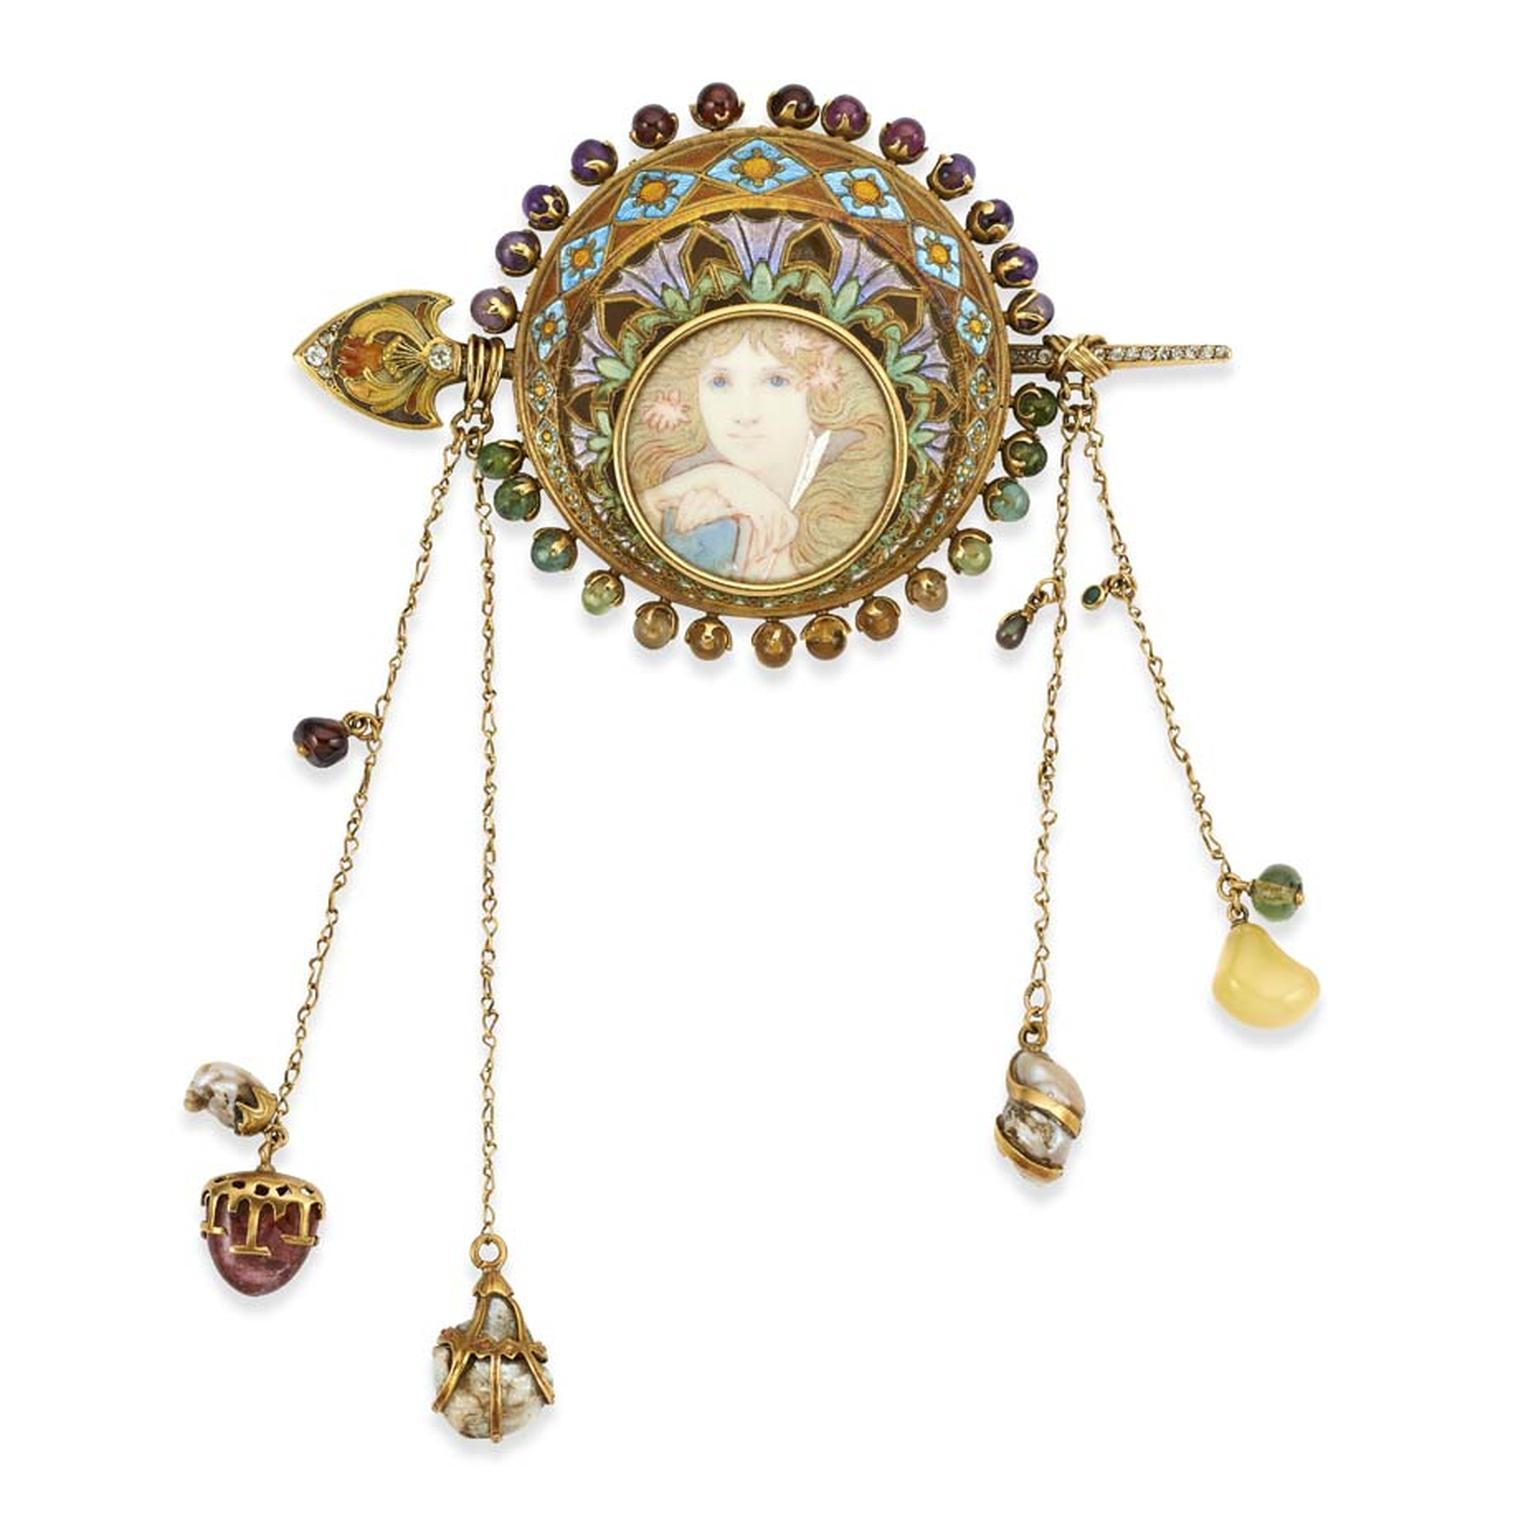 Gold corsage designed by the painter Alphonse Mucha and crafted by the French jeweller George Fouquet. Offered for sale at TEFAF by British antique dealers Wartski.